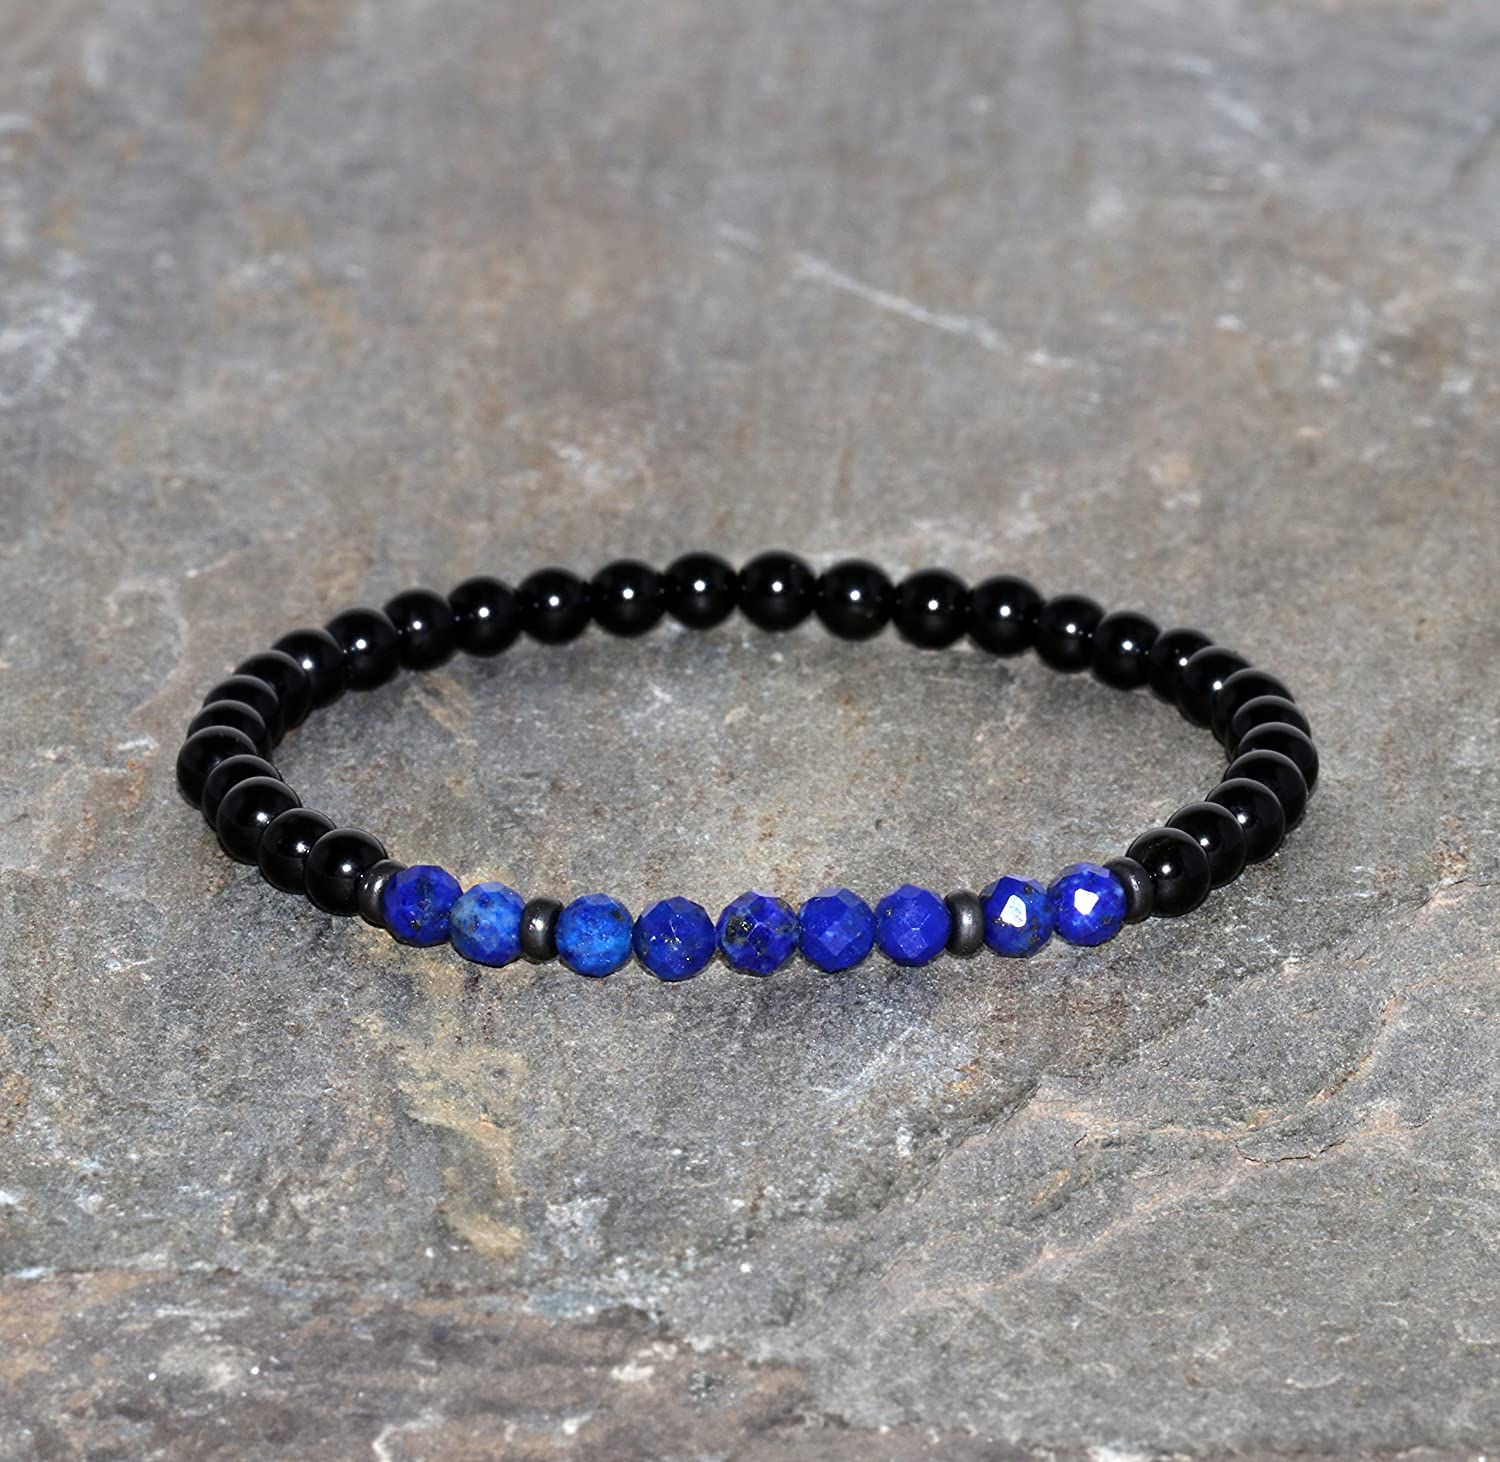 Lapis lazuli and 67% OFF of fixed price Black shopping Spinel Bracelet 4mm Fa Grade Handmade AAA